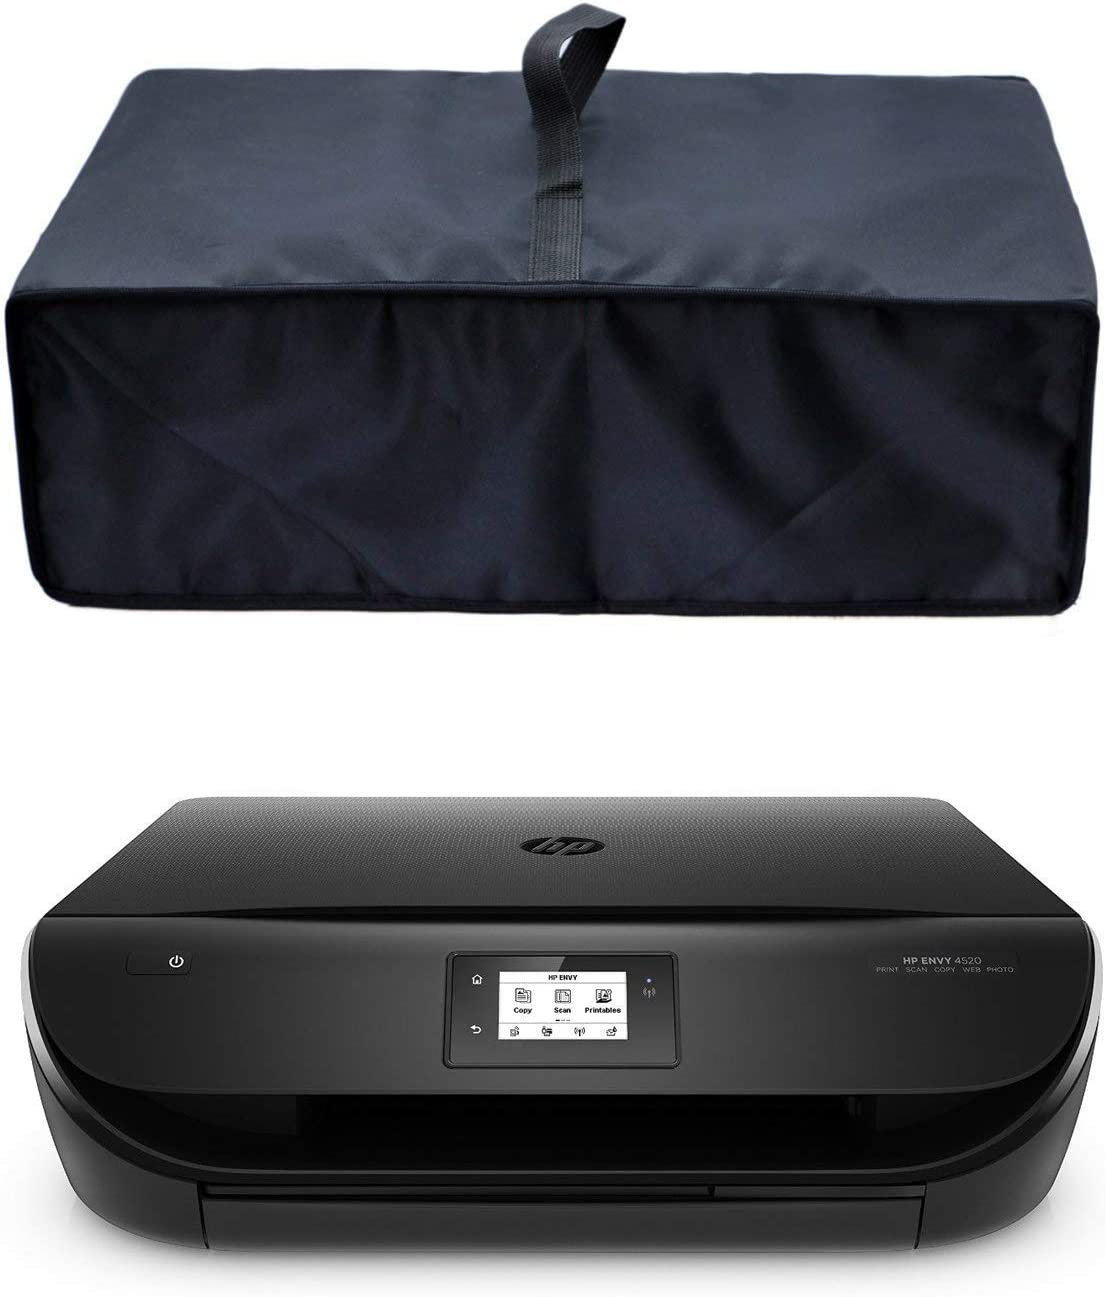 CYGQ Premium Nylon Fabric Waterproof Printer Dust Cover Case Protector for HP Envy 4520/5055/6055 Wireless All-in-One Printer